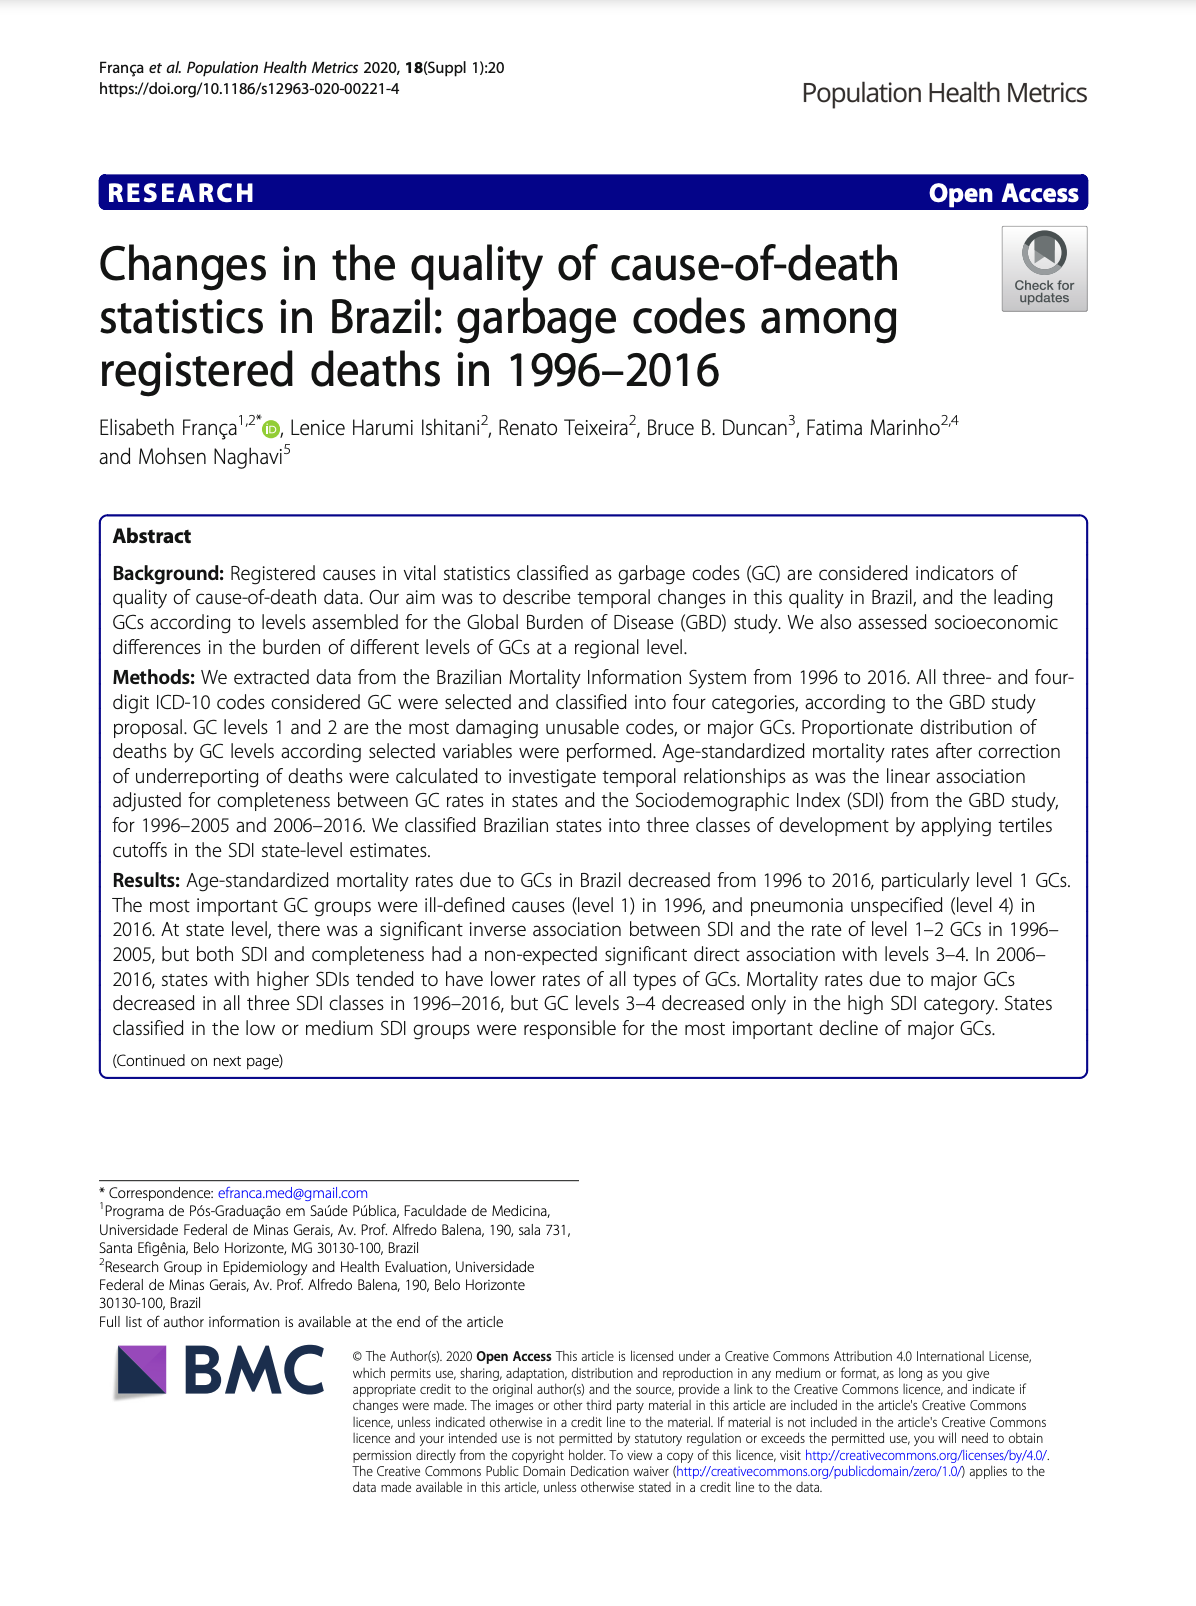 Changes in the quality of cause-of-death statistics in Brazil: garbage codes among registered deaths in 1996–2016 thumbnail